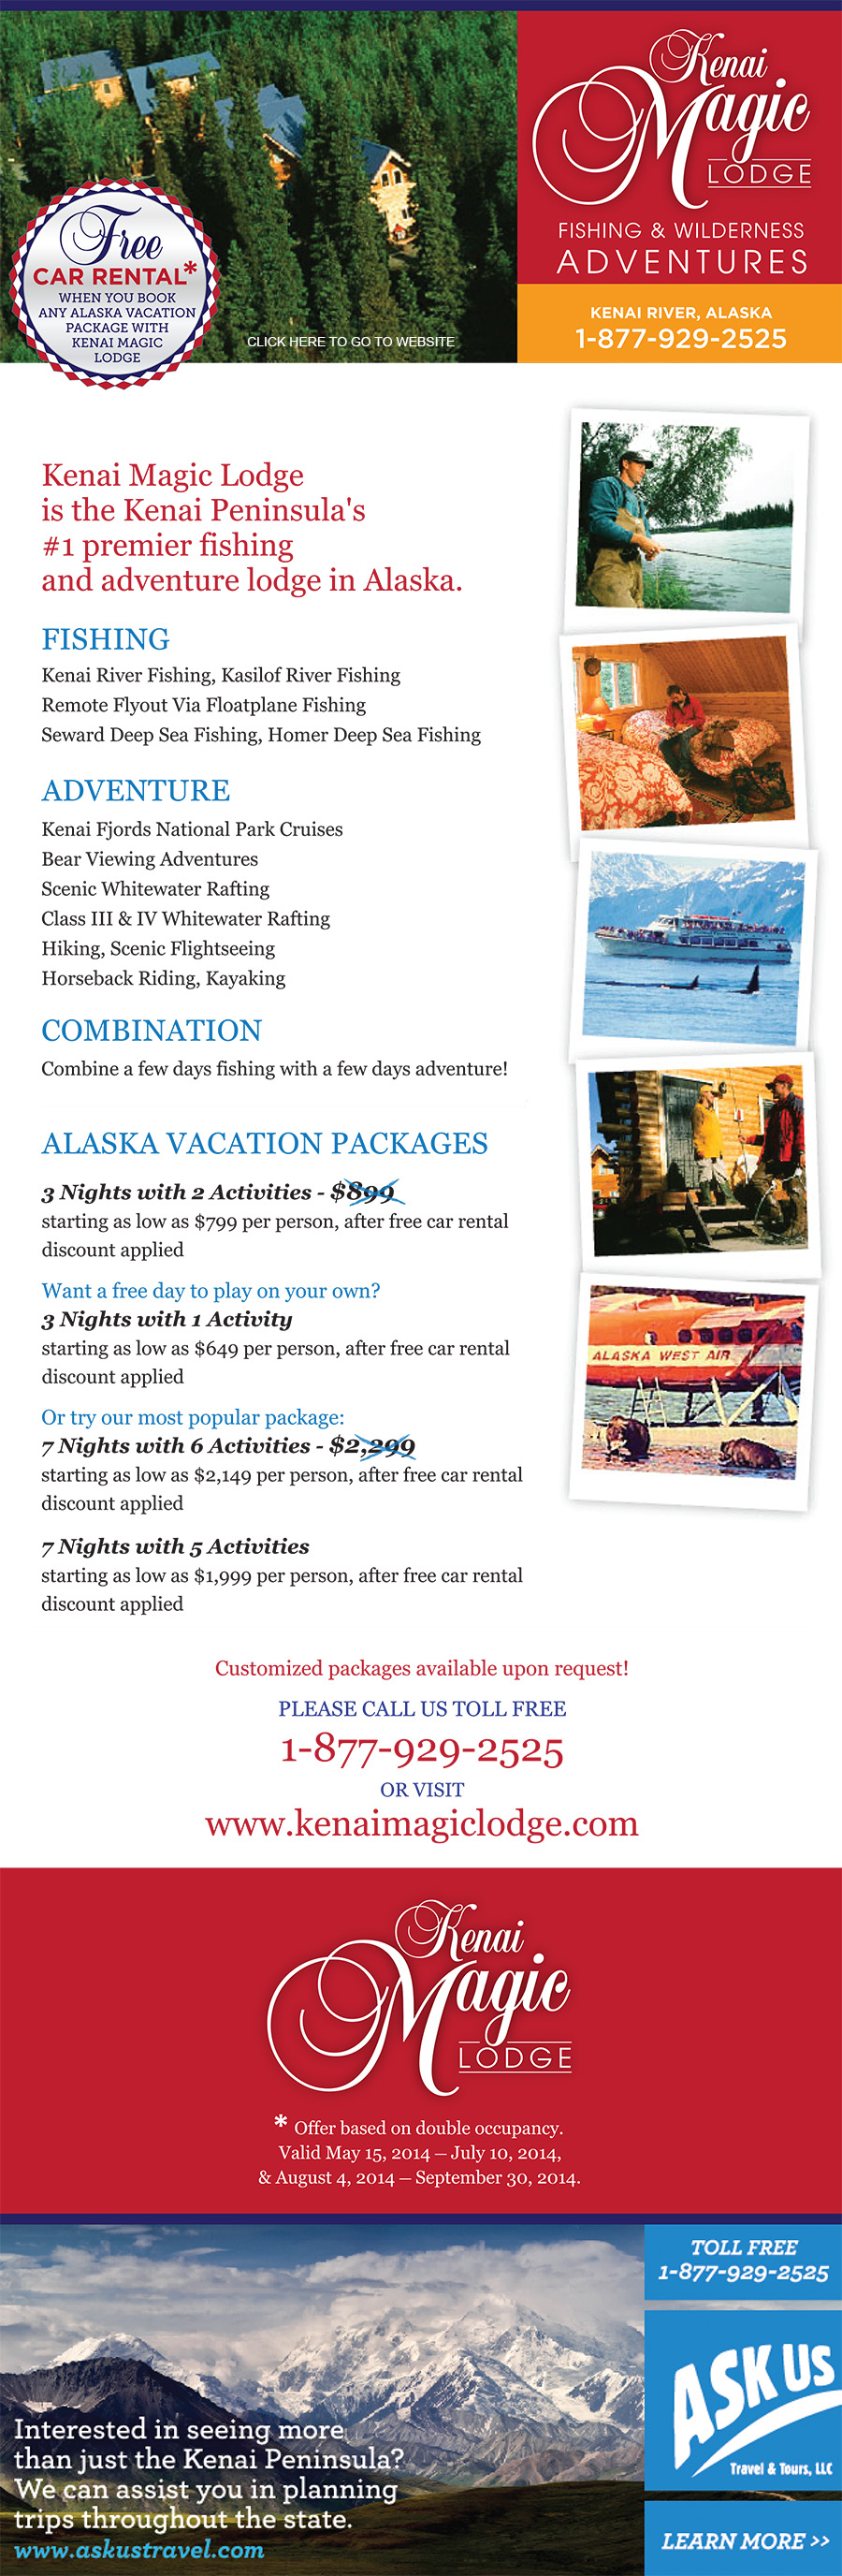 Kenai Magic Lodge Specials